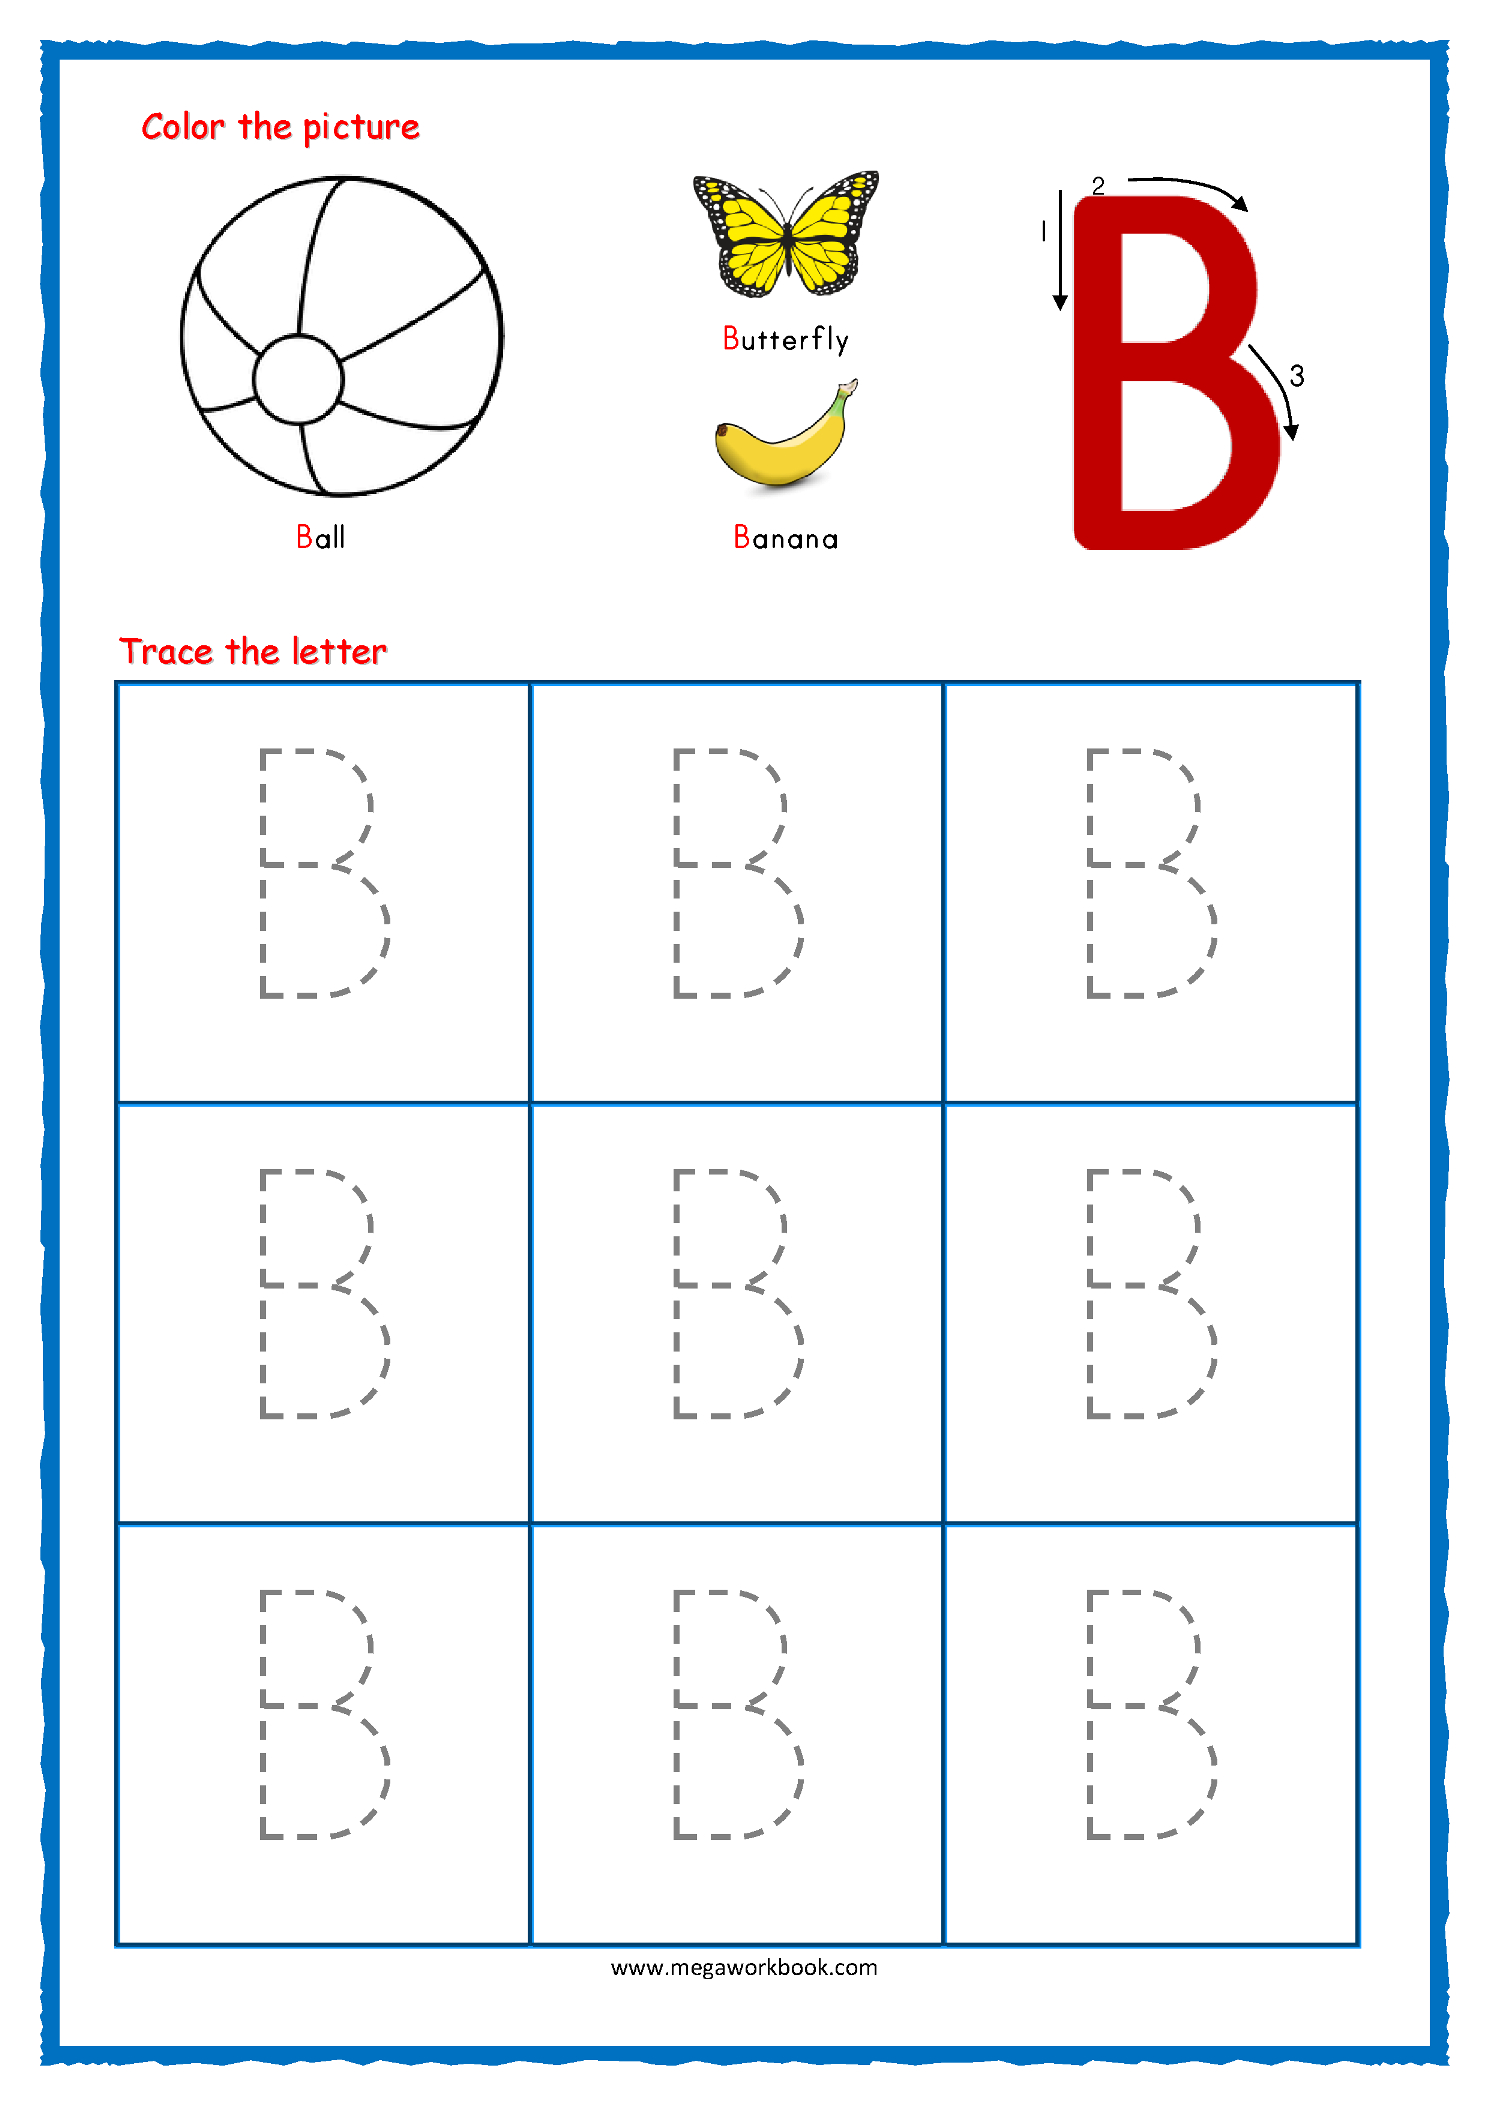 Tracing Letters - Alphabet Tracing - Capital Letters for Alphabet Tracing Templates Free